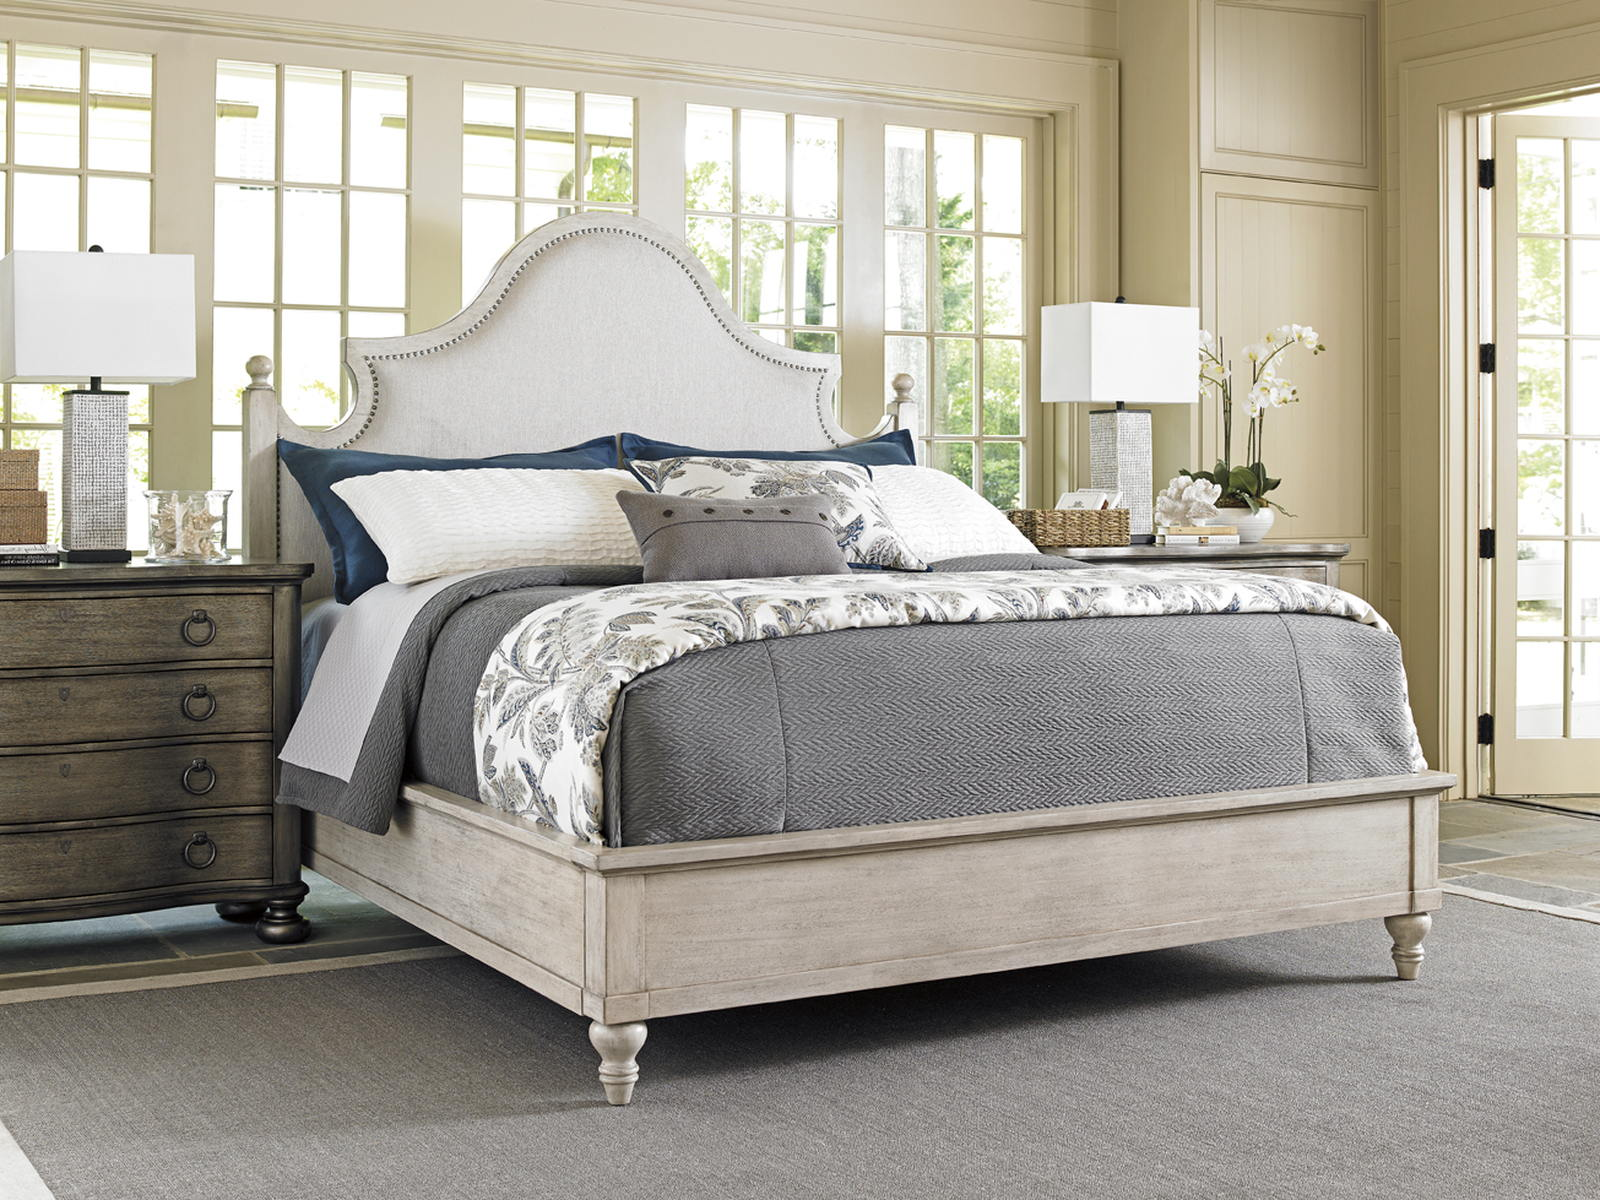 Lexington Oyster Bay 4 Piece Arbor Hills Upholstered Bedroom Set In Distressed Oyster Bay